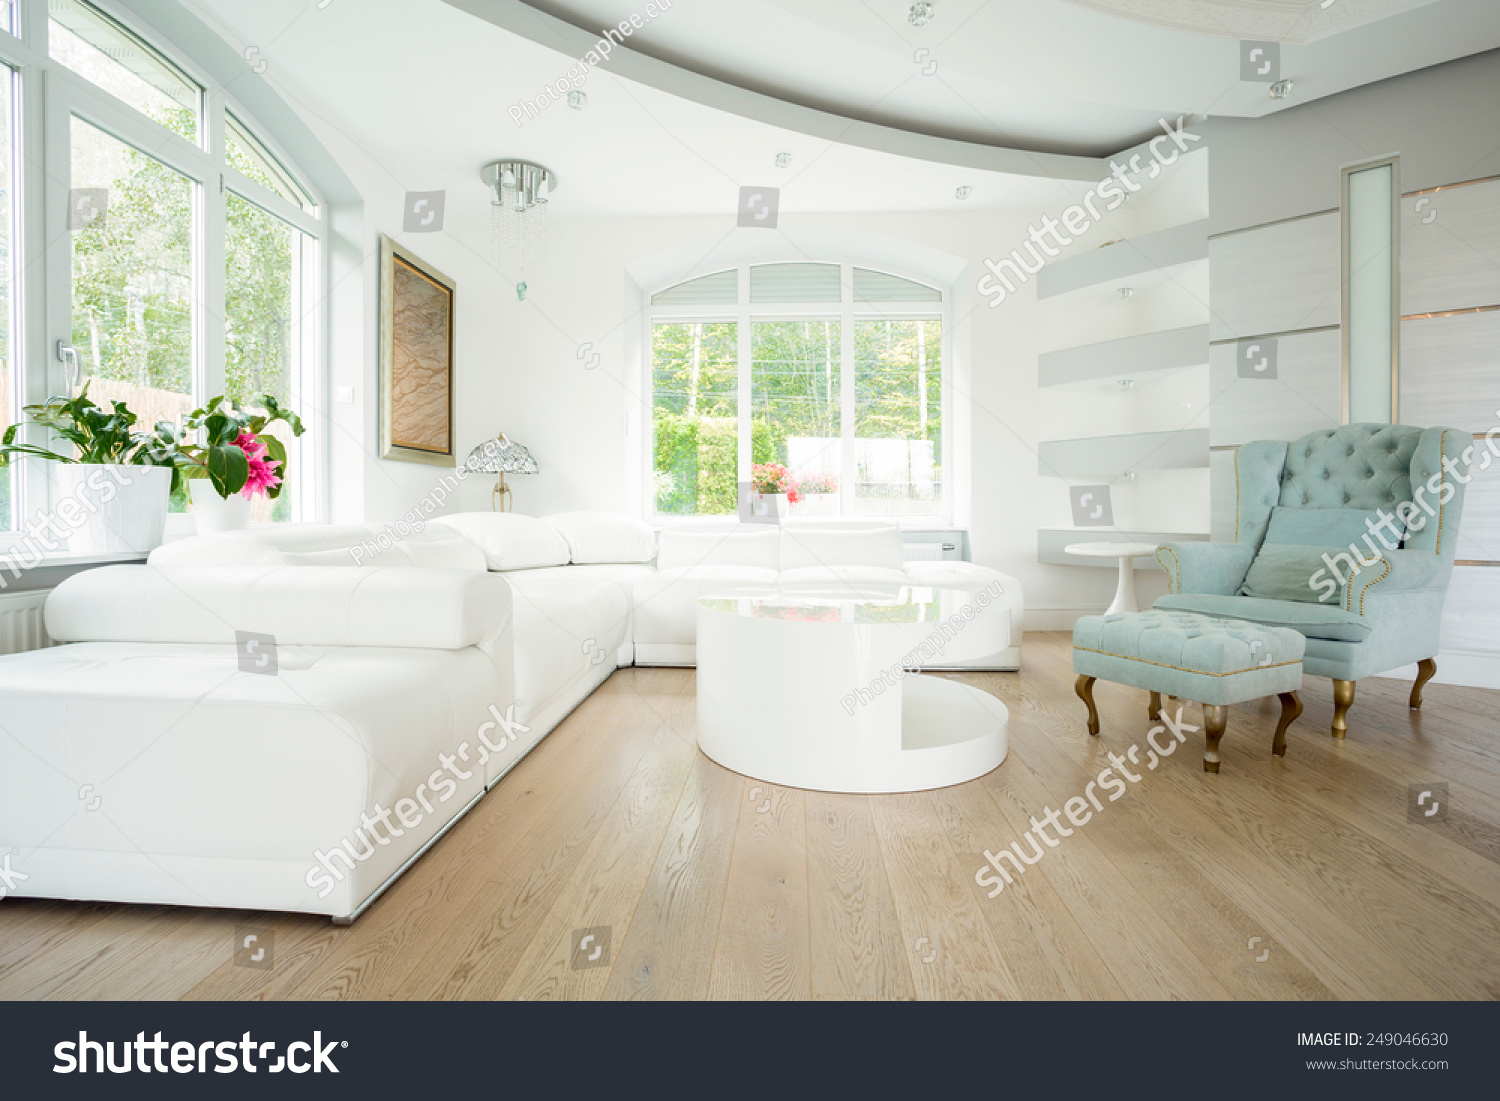 Luxury Living Room Interior In Pastel Colors Stock Photo